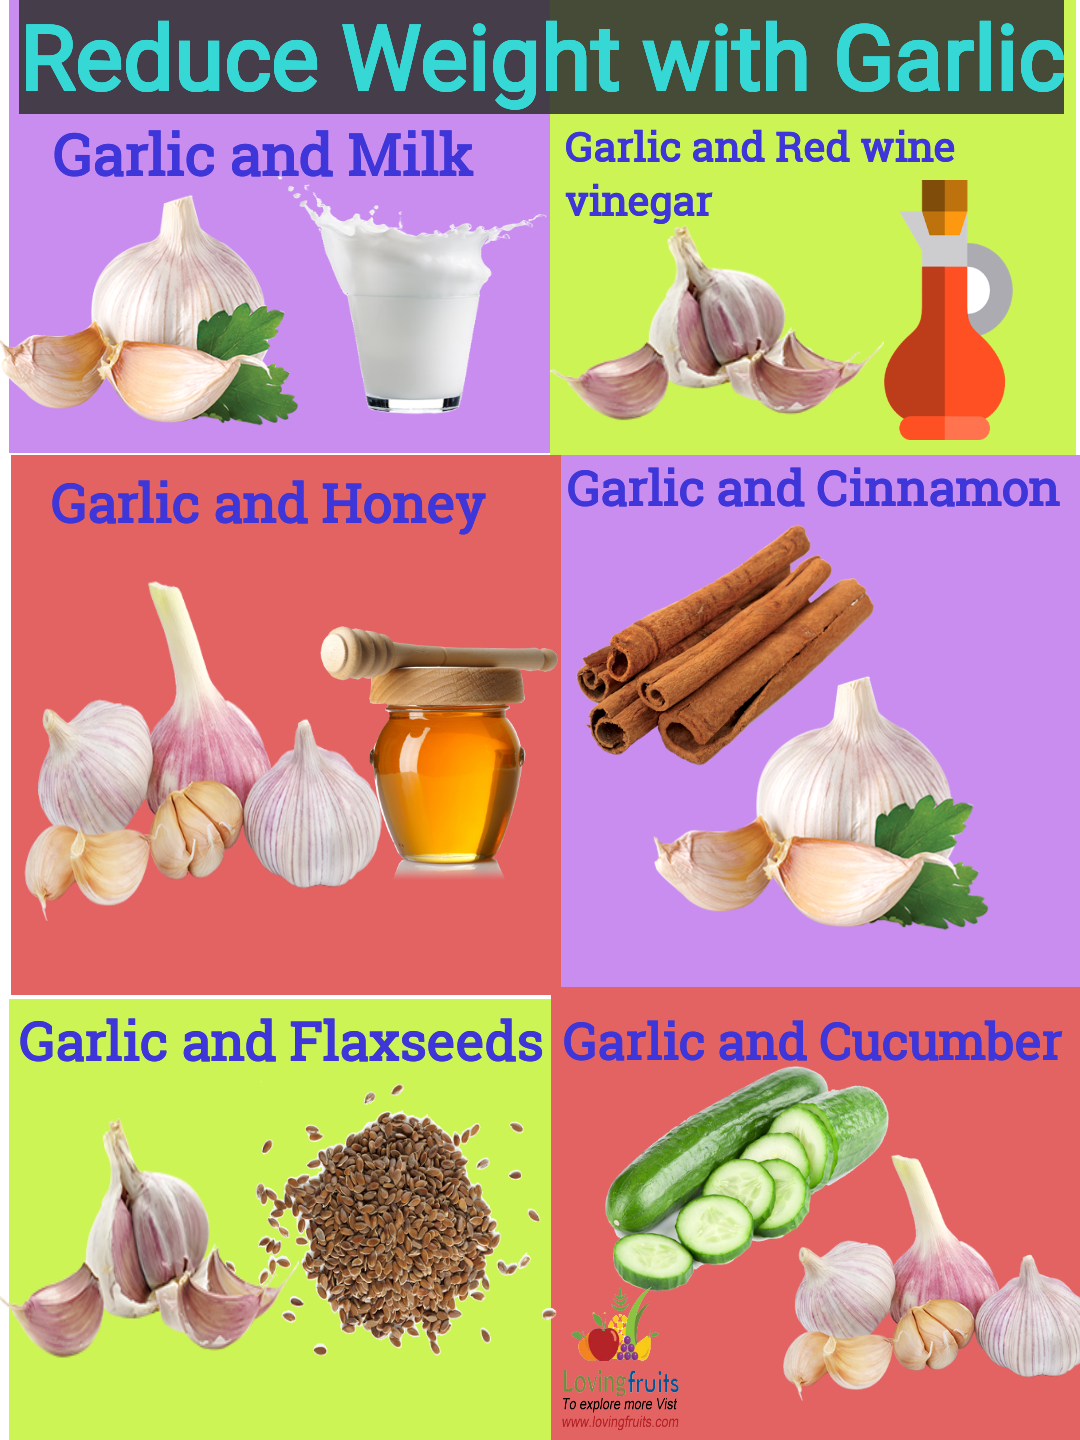 honeyand garlic for weight loss